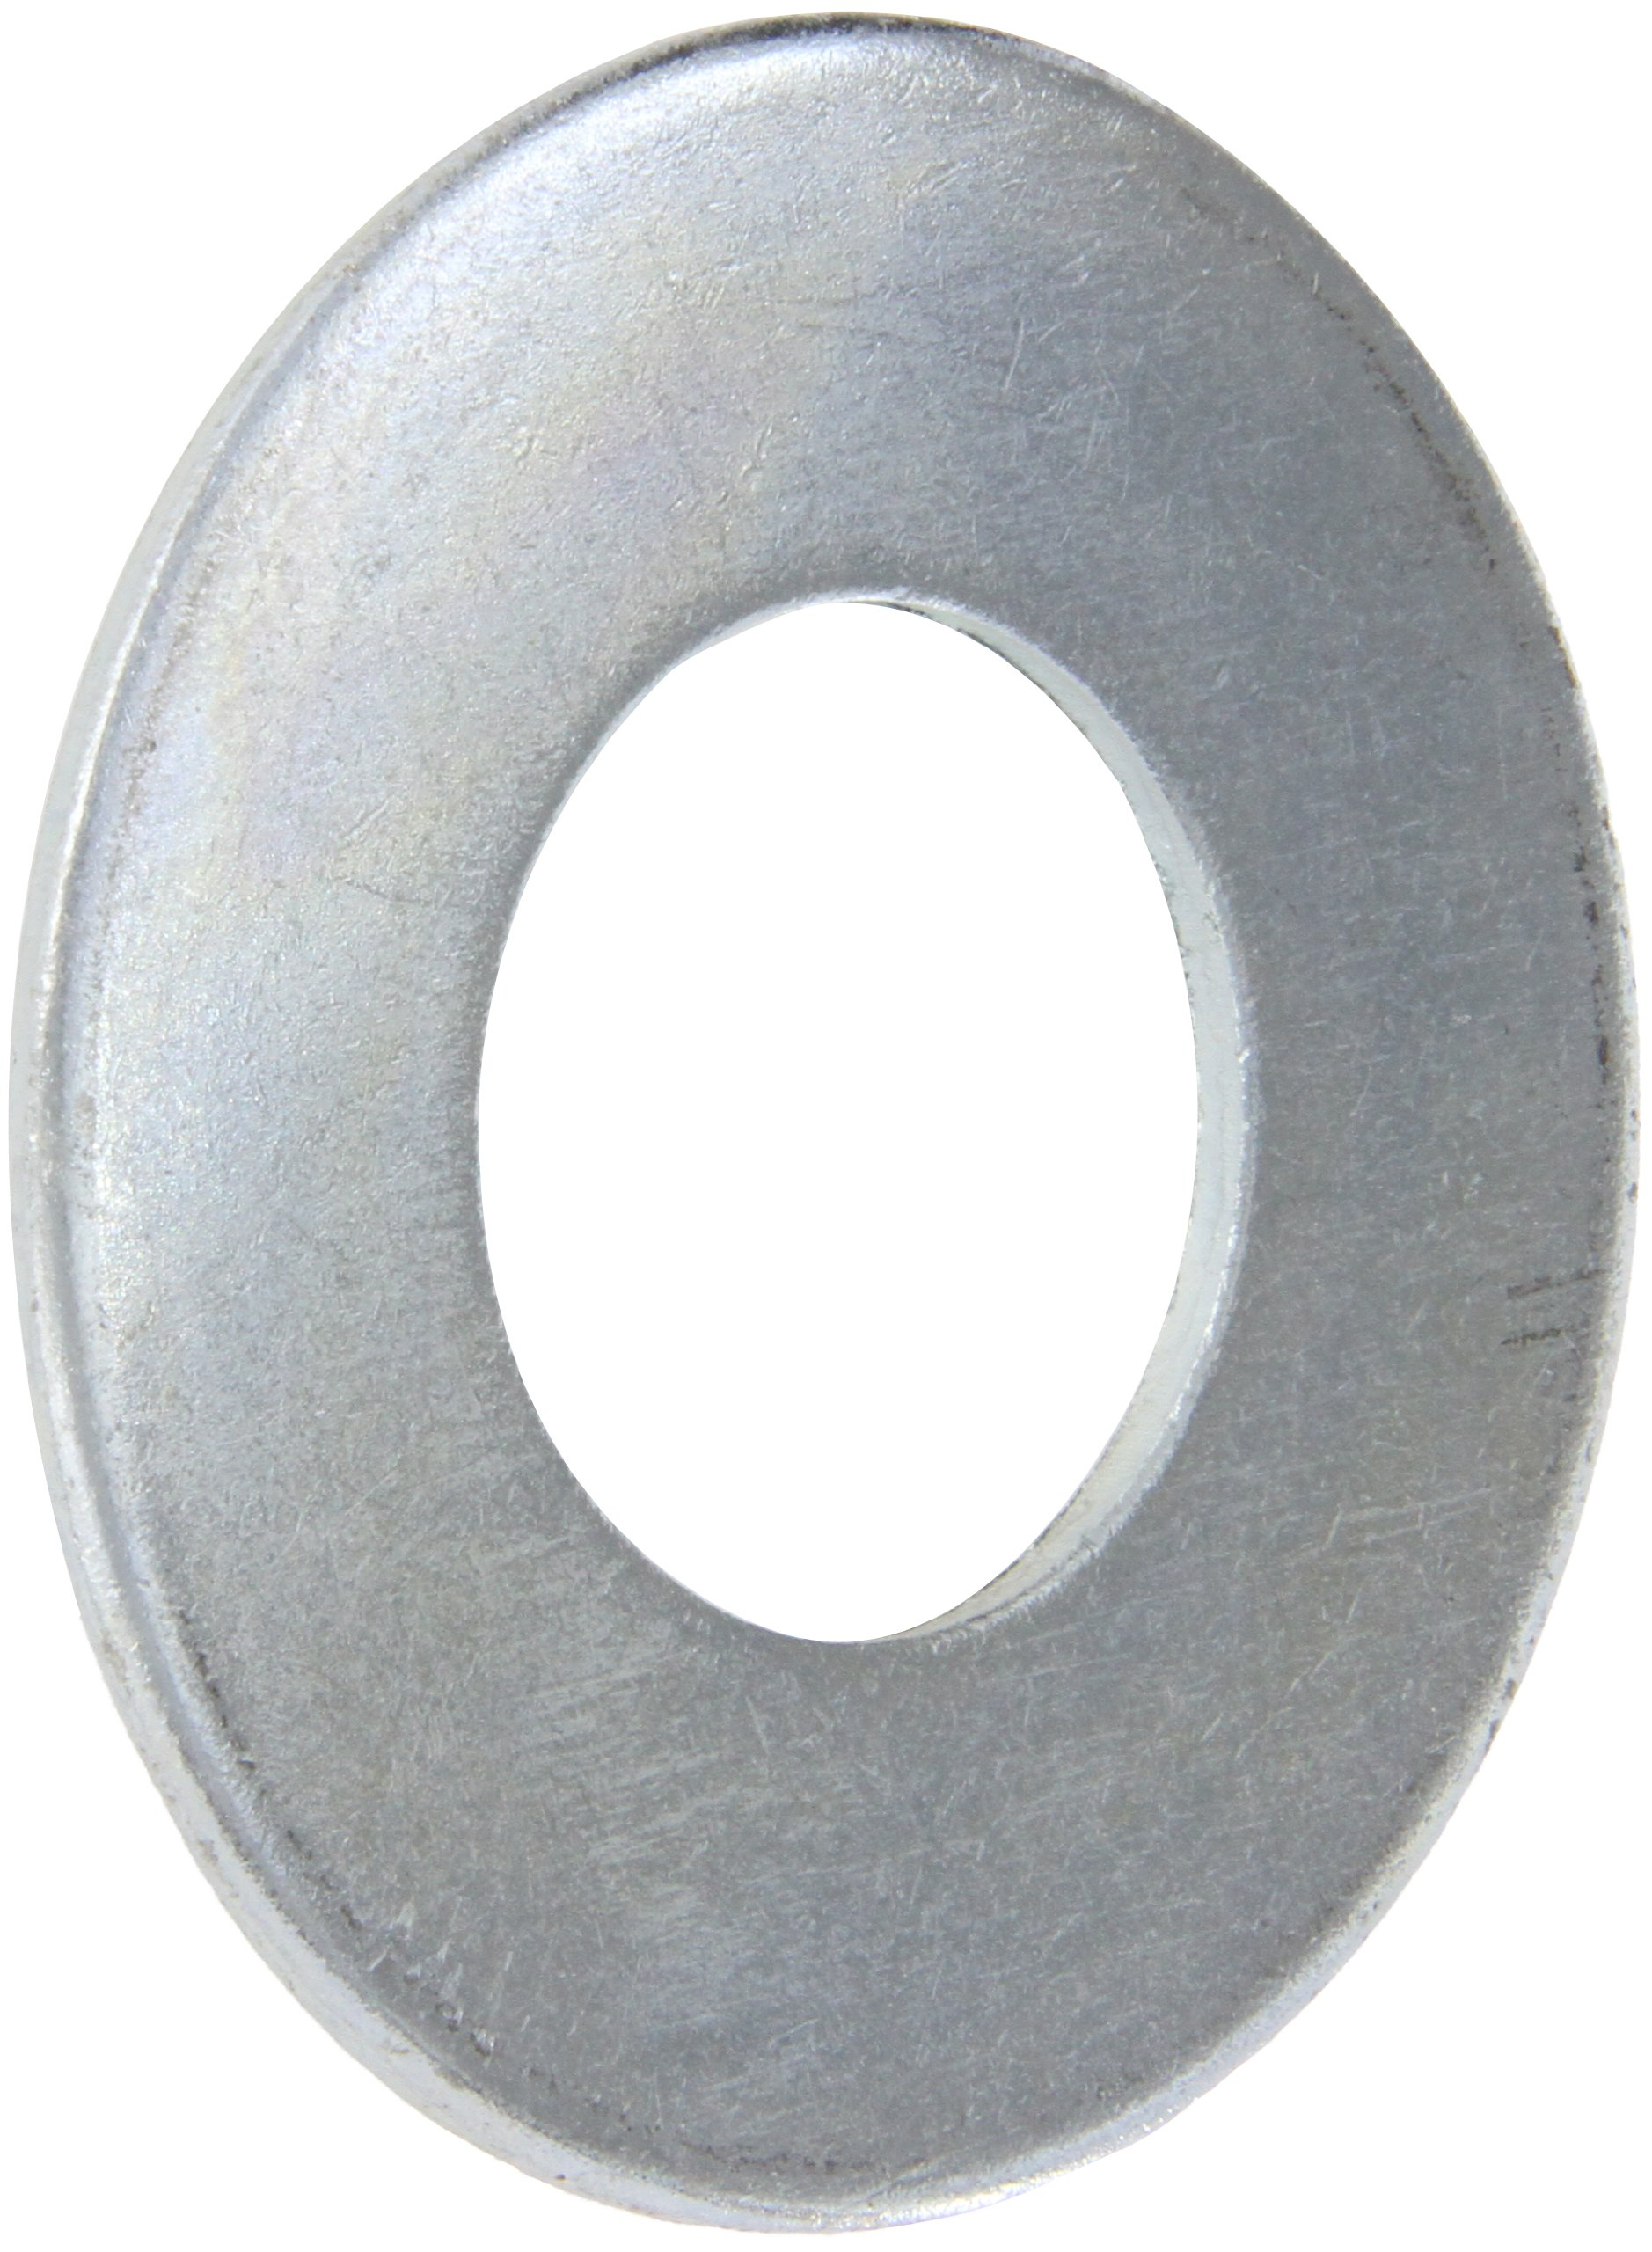 Steel Flat Washer, Zinc Plated Finish, ASME B18.22.1, 2'' Screw Size, 2-1/8'' ID, 4-1/2'' OD, 0.180'' Thick (Pack of 5)